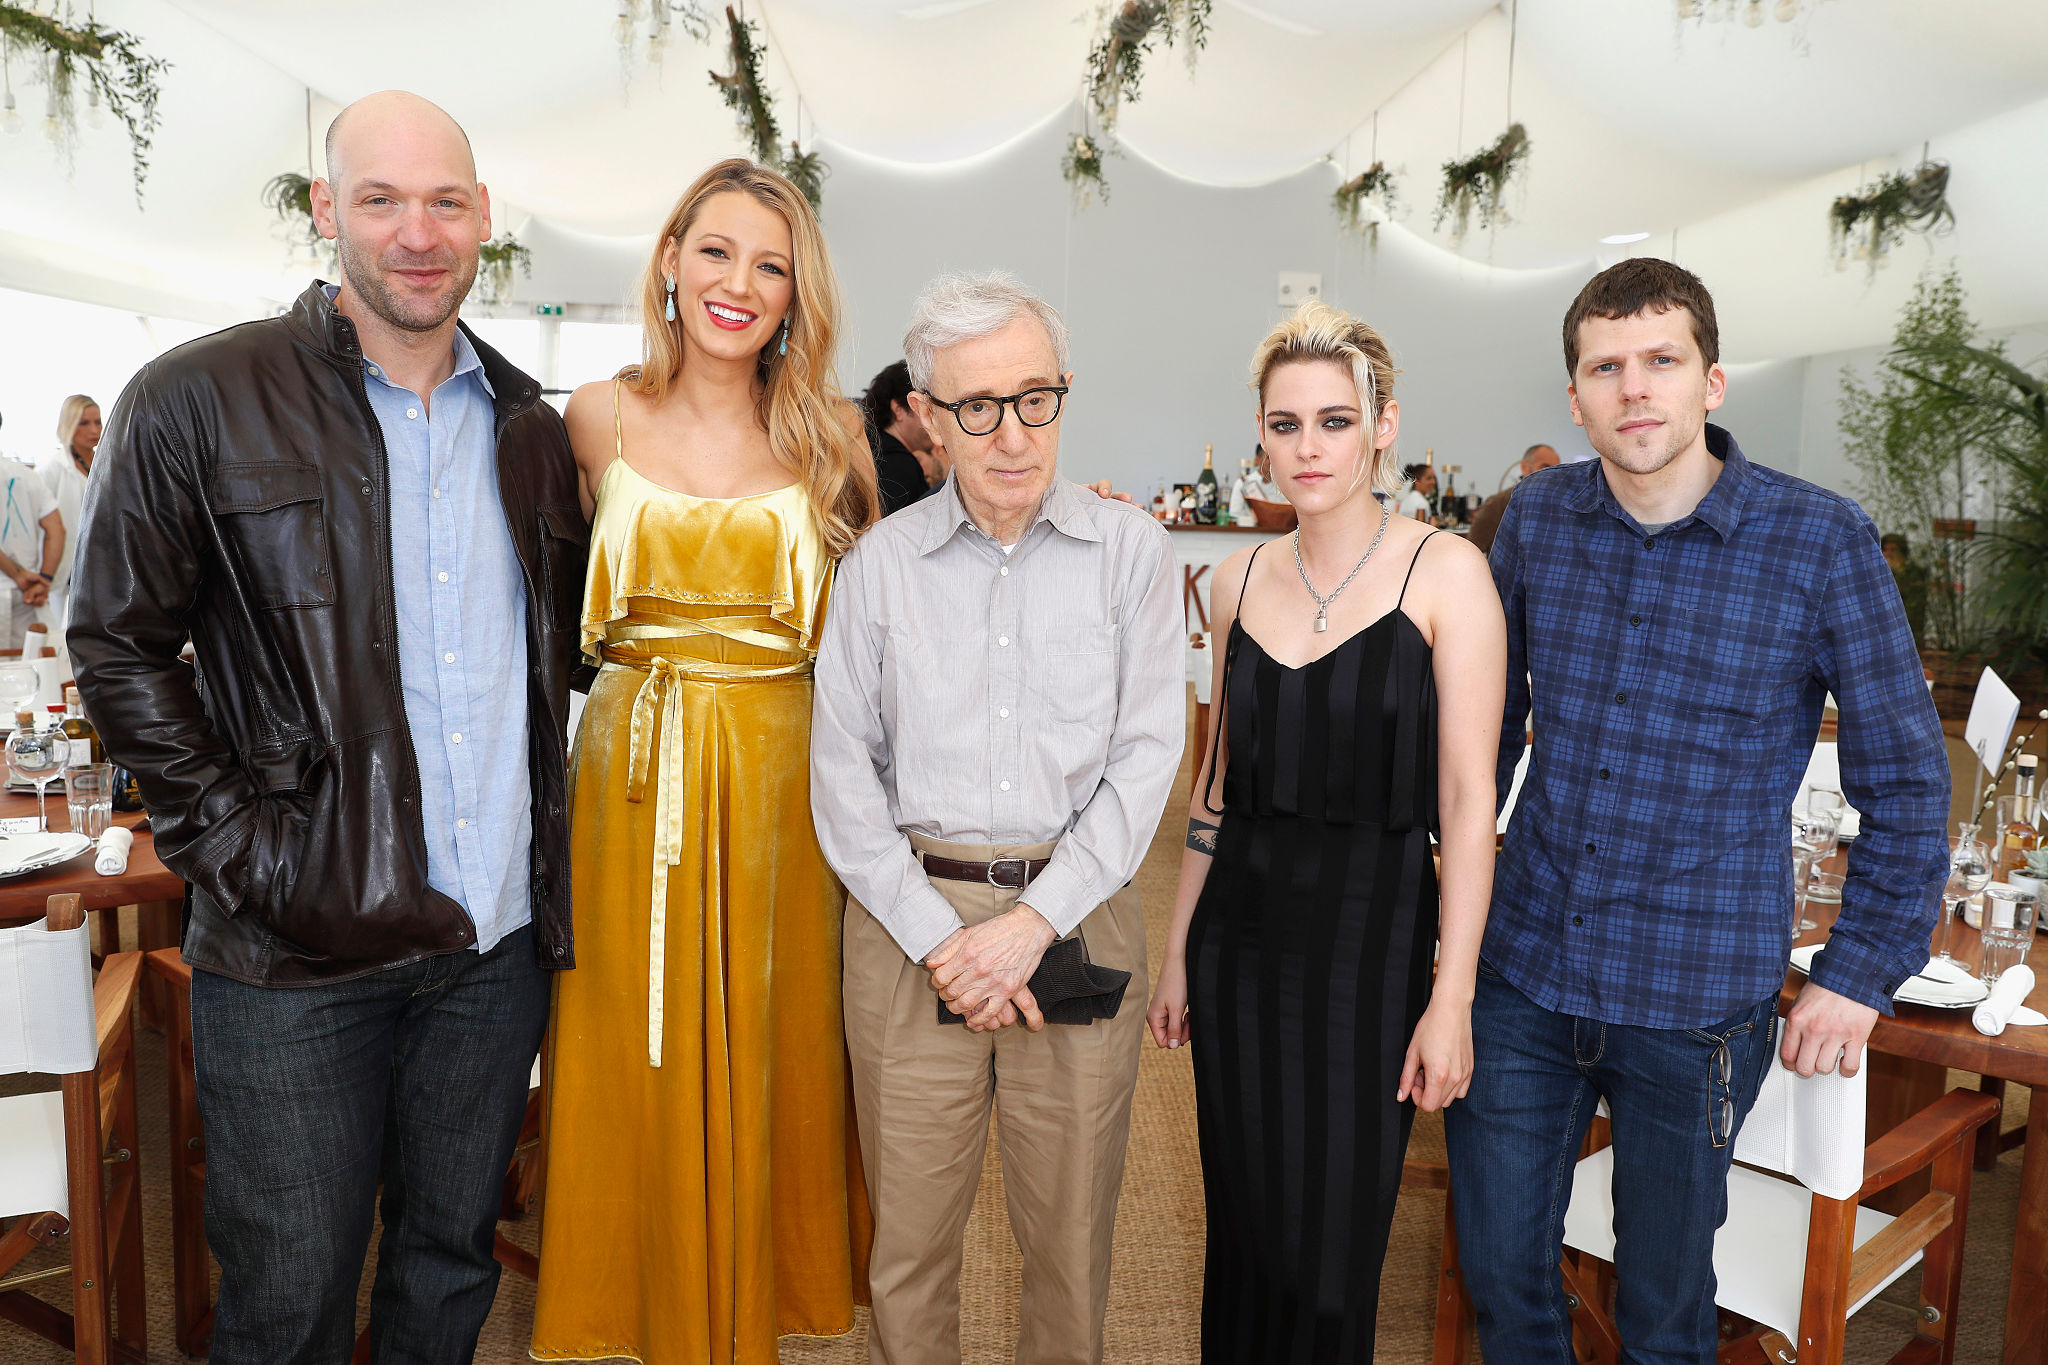 #CafeSociety luncheon at the Cannes Film Festival – May 12, 2016